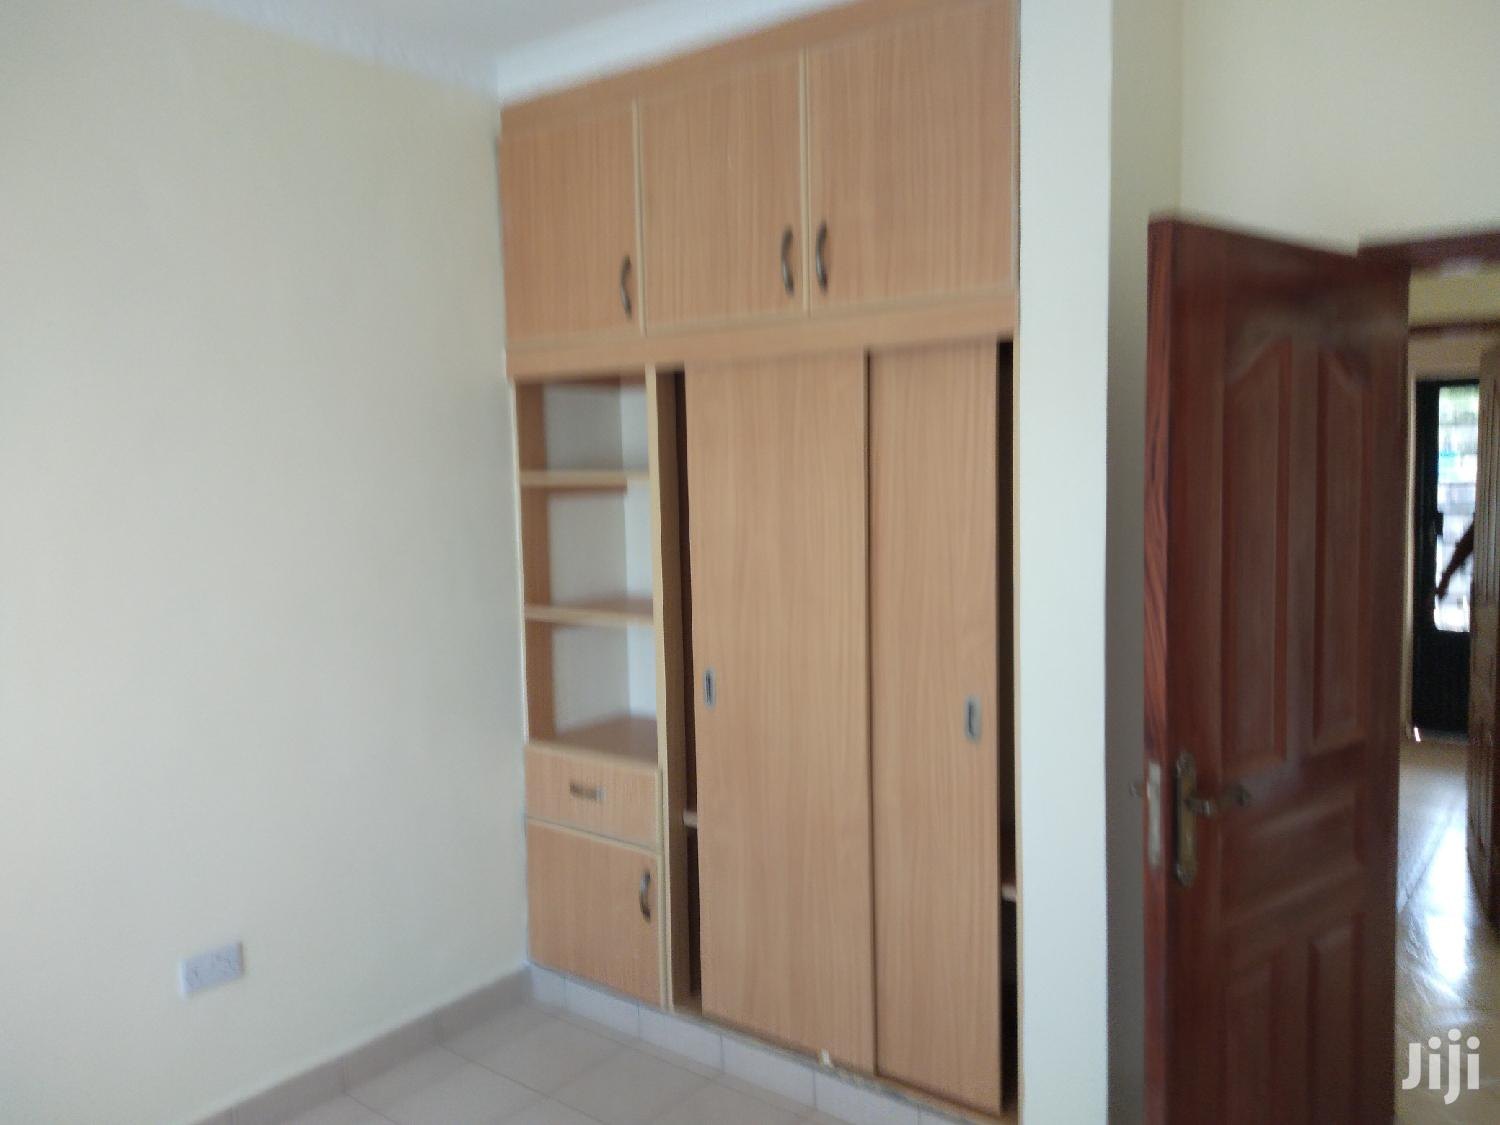 Town House to Let in Ngong Kibiko | Houses & Apartments For Rent for sale in Ngong, Kajiado, Kenya